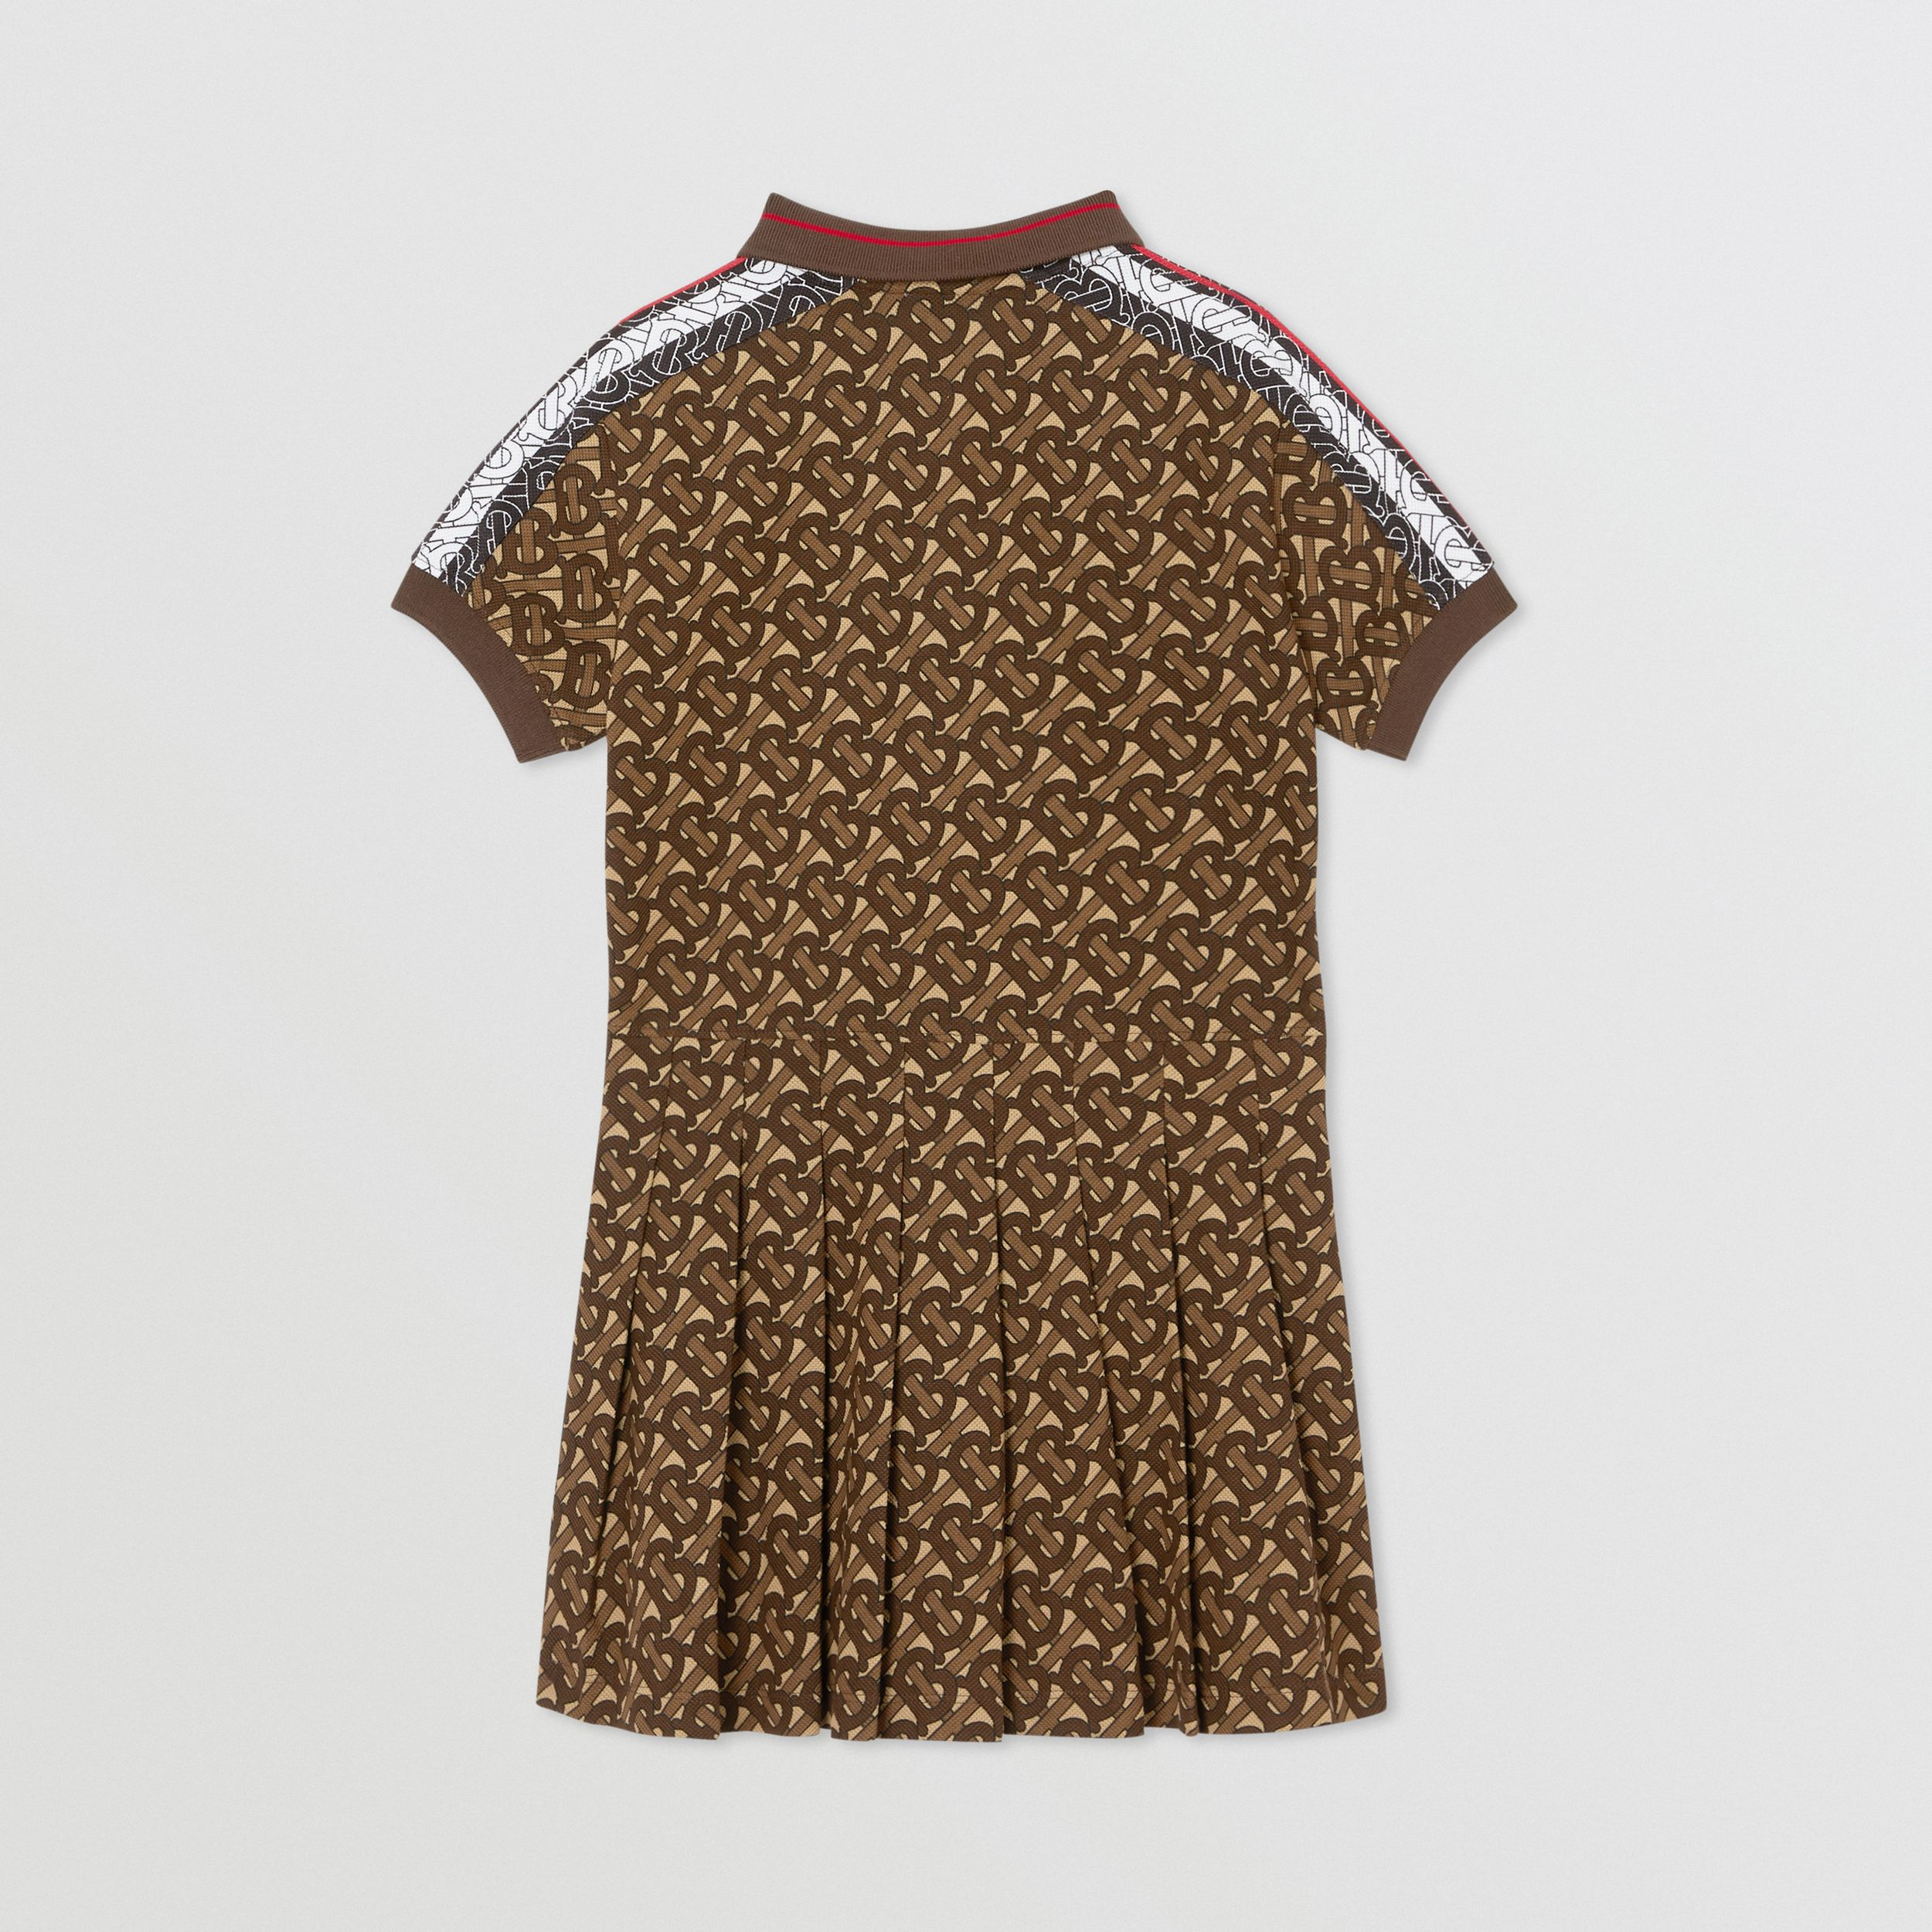 Monogram Stripe Print Cotton Polo Shirt Dress in Bridle Brown | Burberry - 4